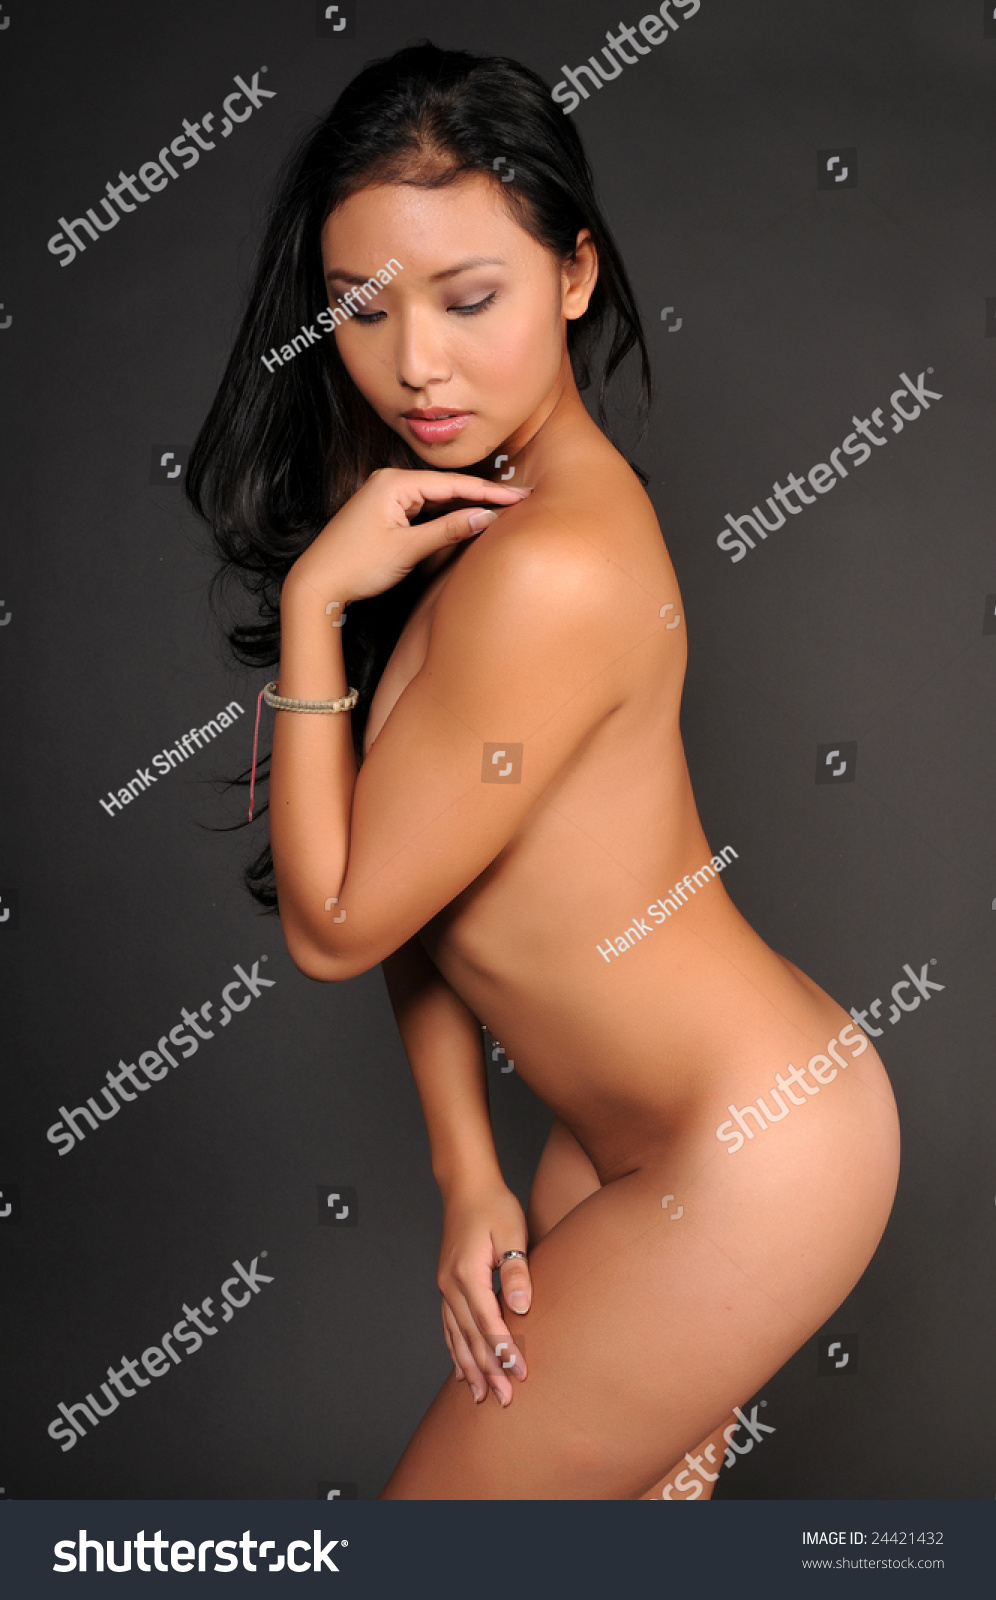 Beautiful Young Thai Woman Poses Nude Stock Photo 24421432 ...